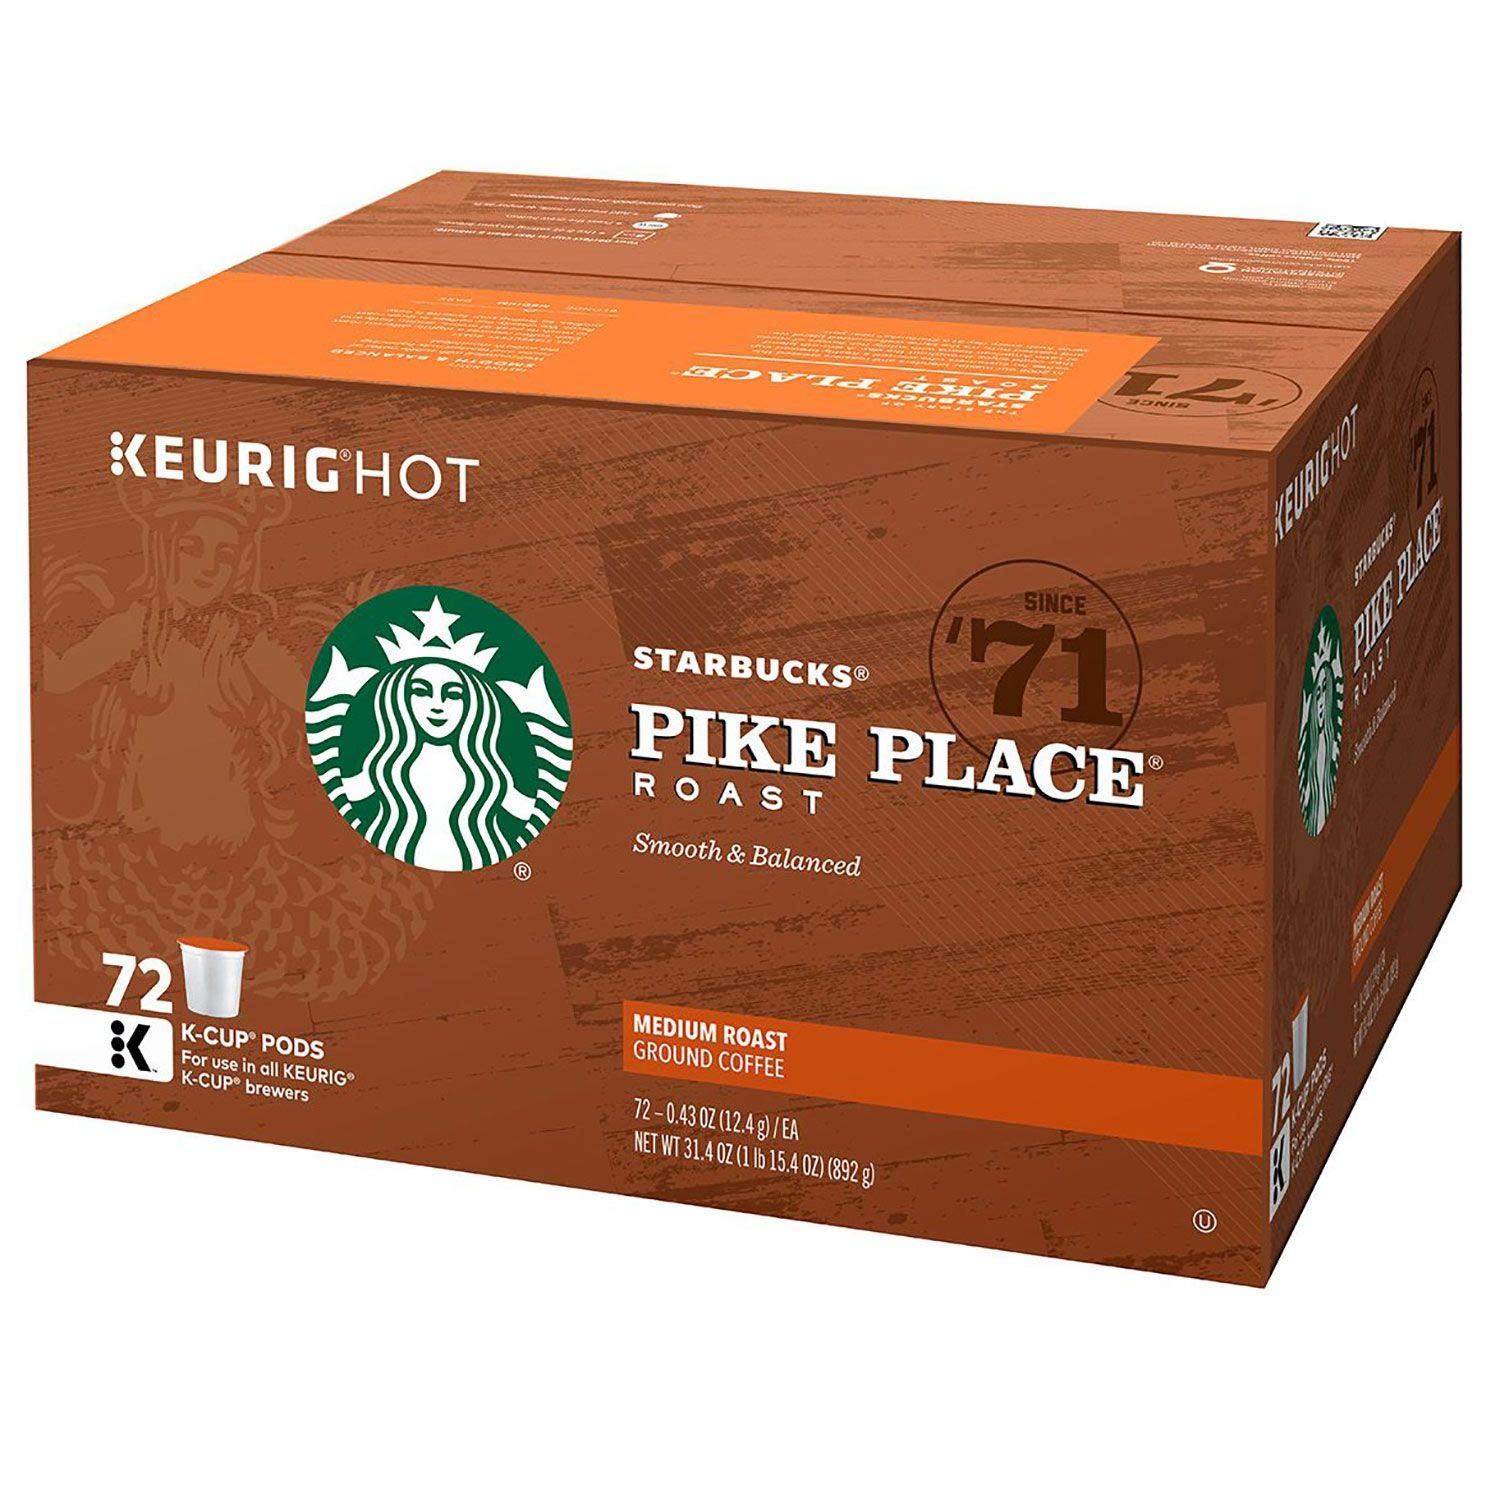 Starbucks Pike Place Roast, K-Cup for Keurig Brewers, 72 Count…